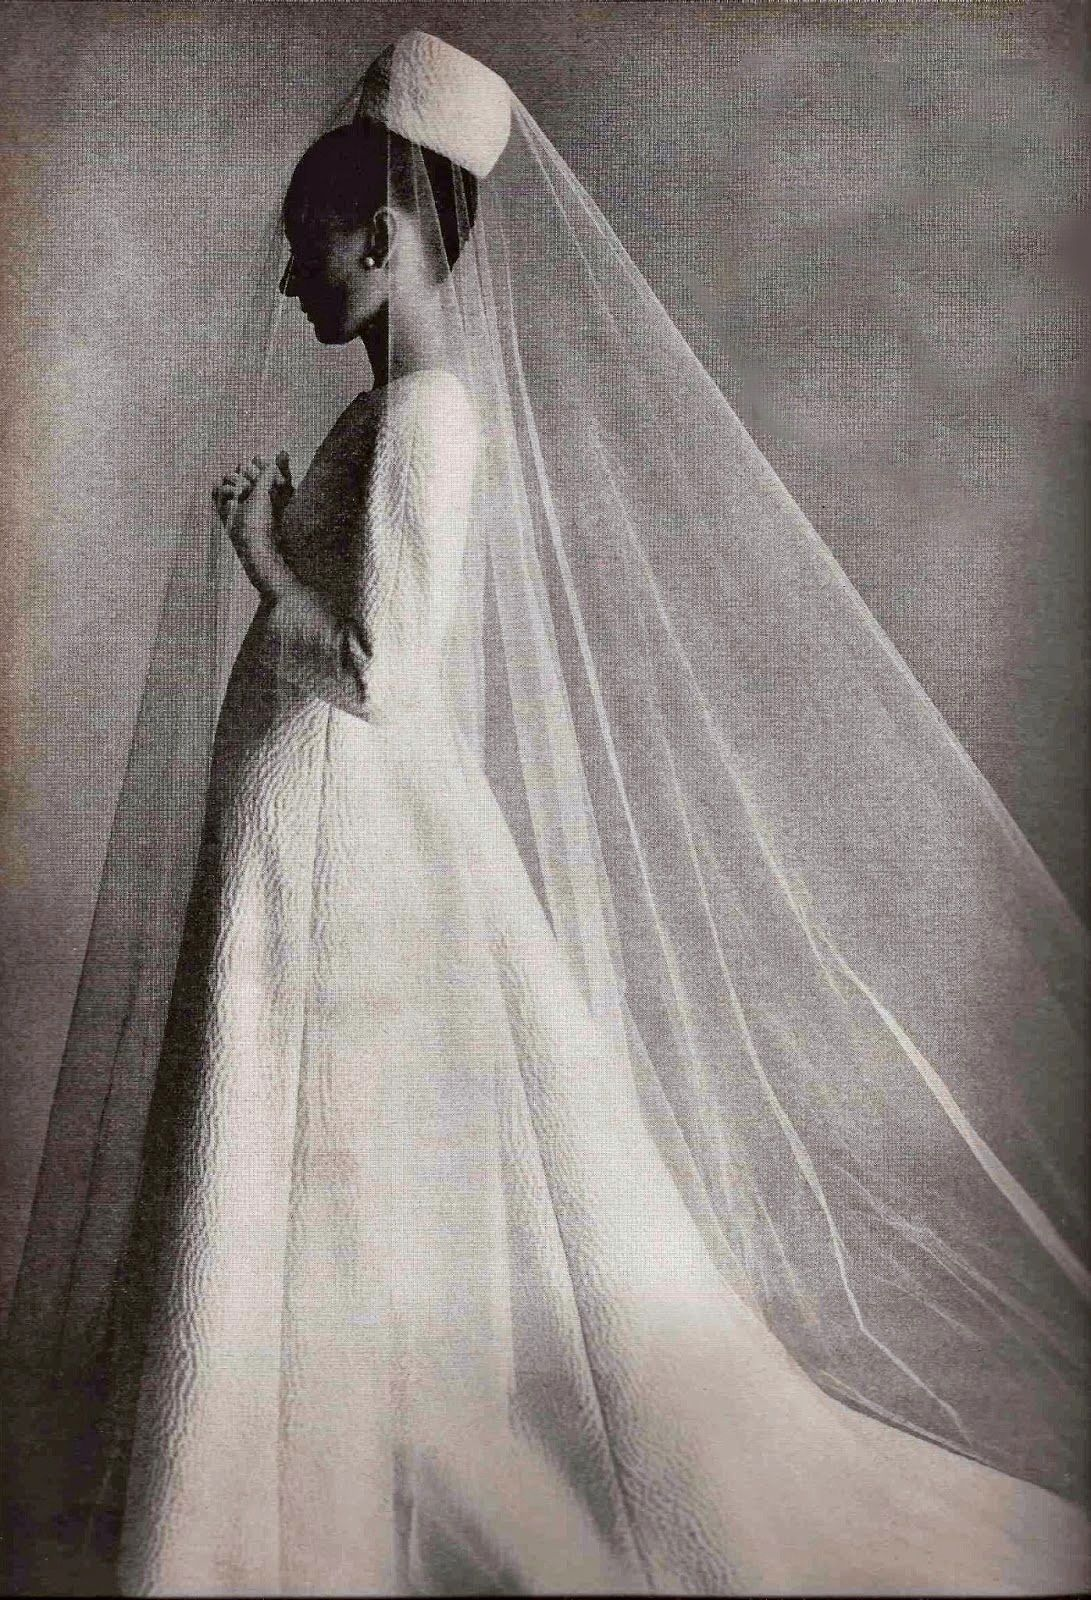 1964 Vogue, November.AUDREY HEPBURN IN GIVENCHY | "|1091|1600|?|40468728a44a1a0f8f084950f39c7ac3|False|UNLIKELY|0.3007546663284302